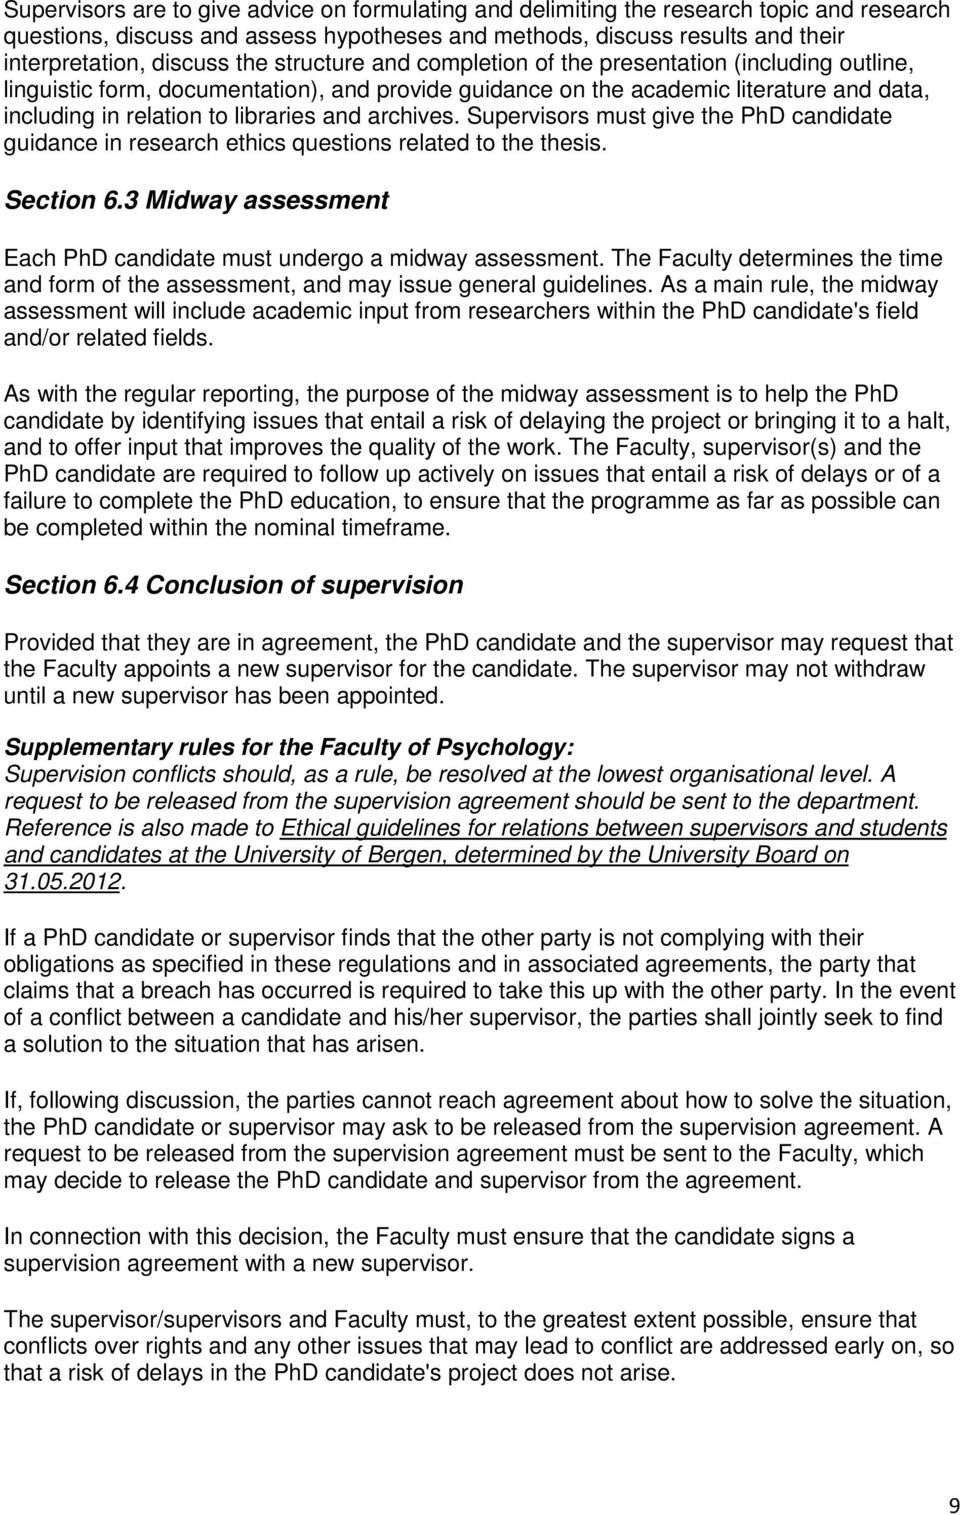 archives. Supervisors must give the PhD candidate guidance in research ethics questions related to the thesis. Section 6.3 Midway assessment Each PhD candidate must undergo a midway assessment.